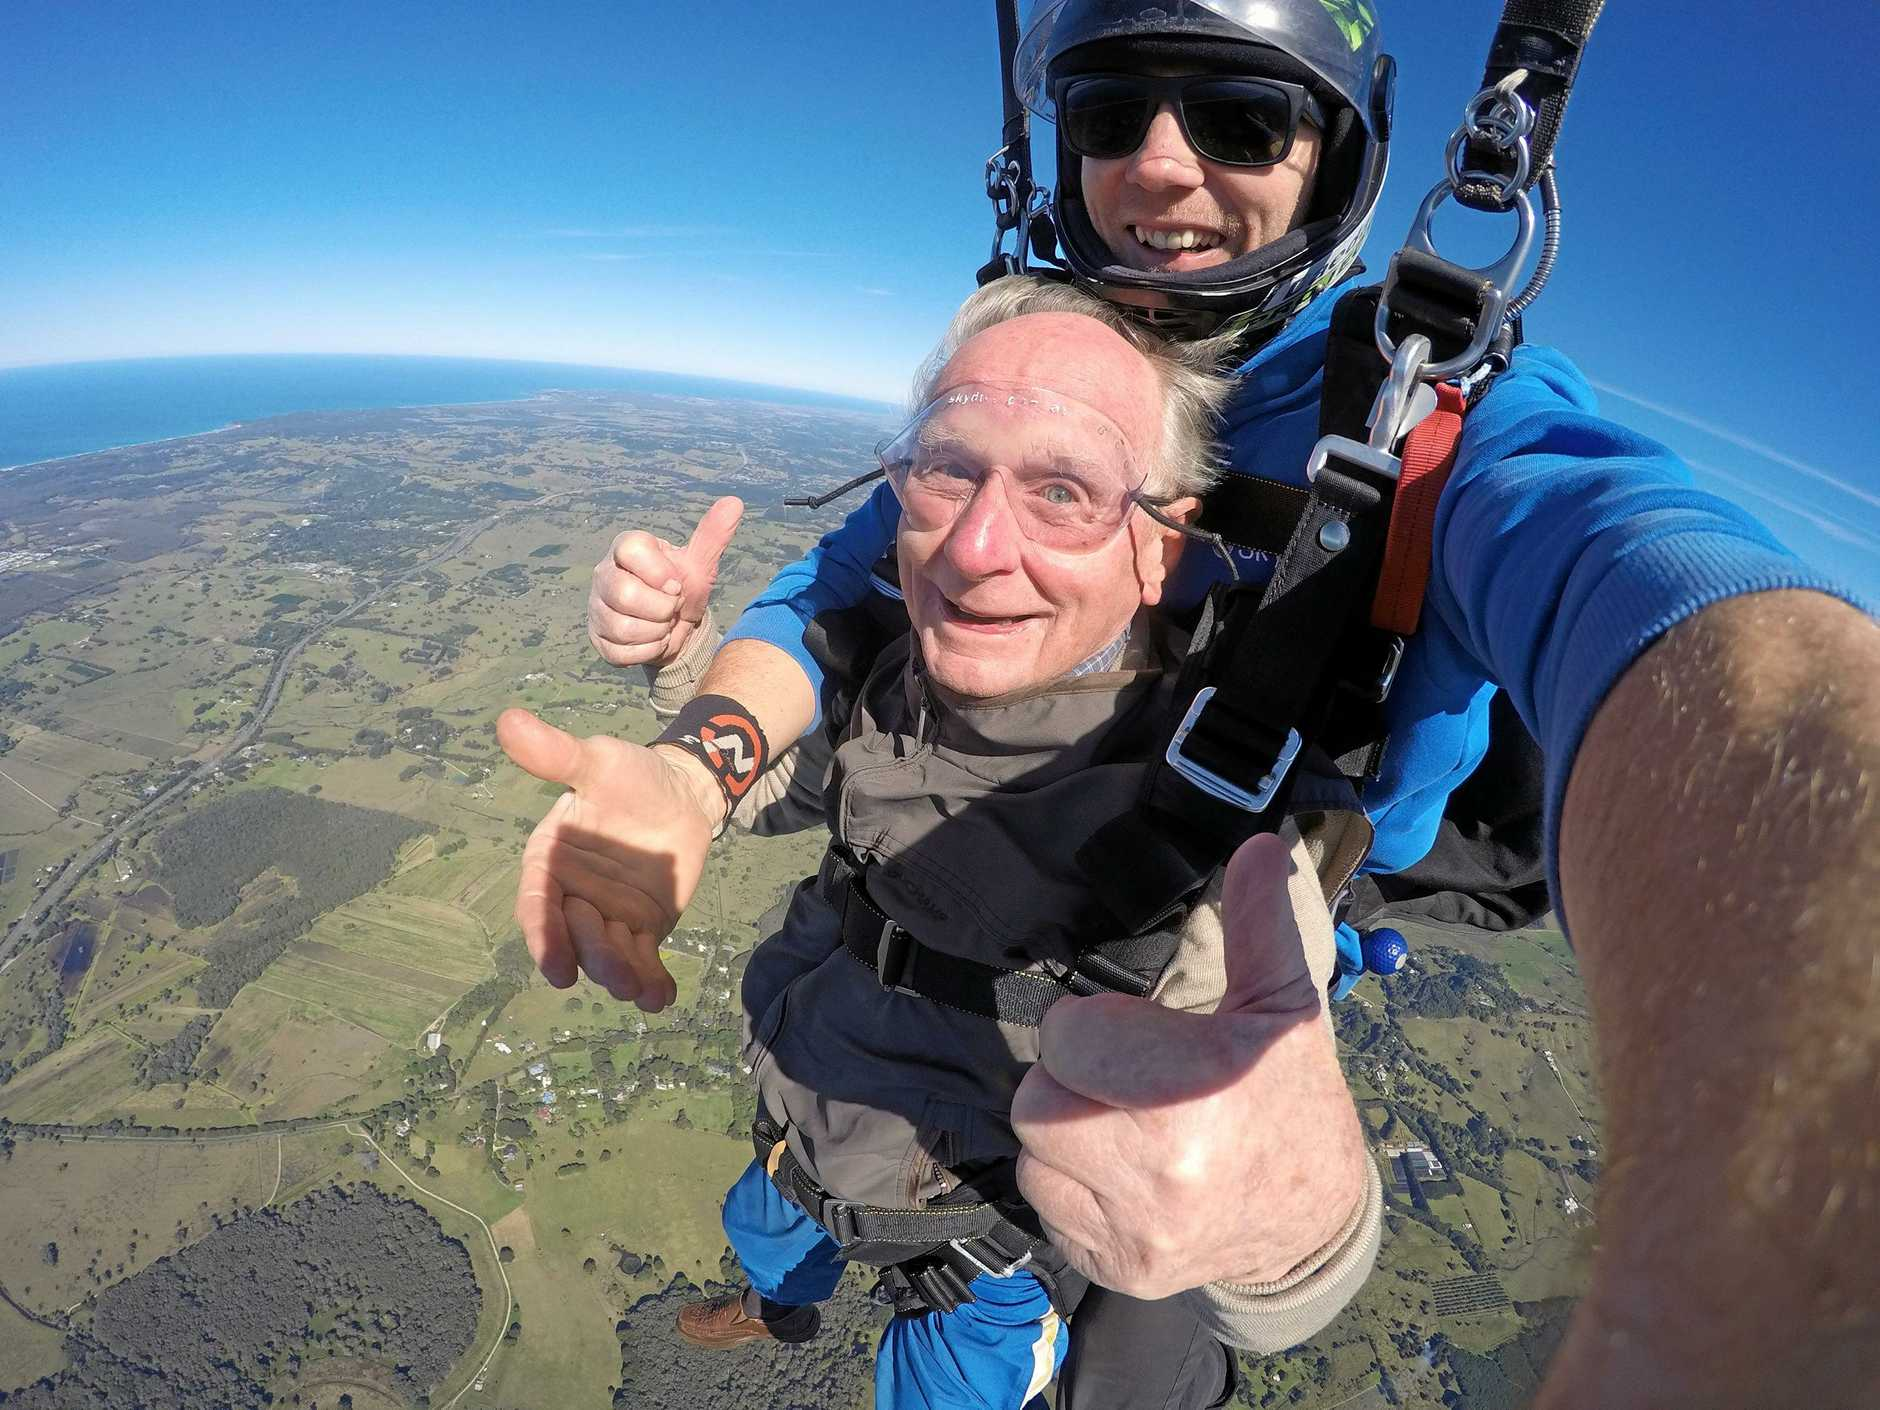 NEVER TOO OLD: Jock Rose, 90, takes to the sky over Byron Bay to tick skydiving off his bucket list.